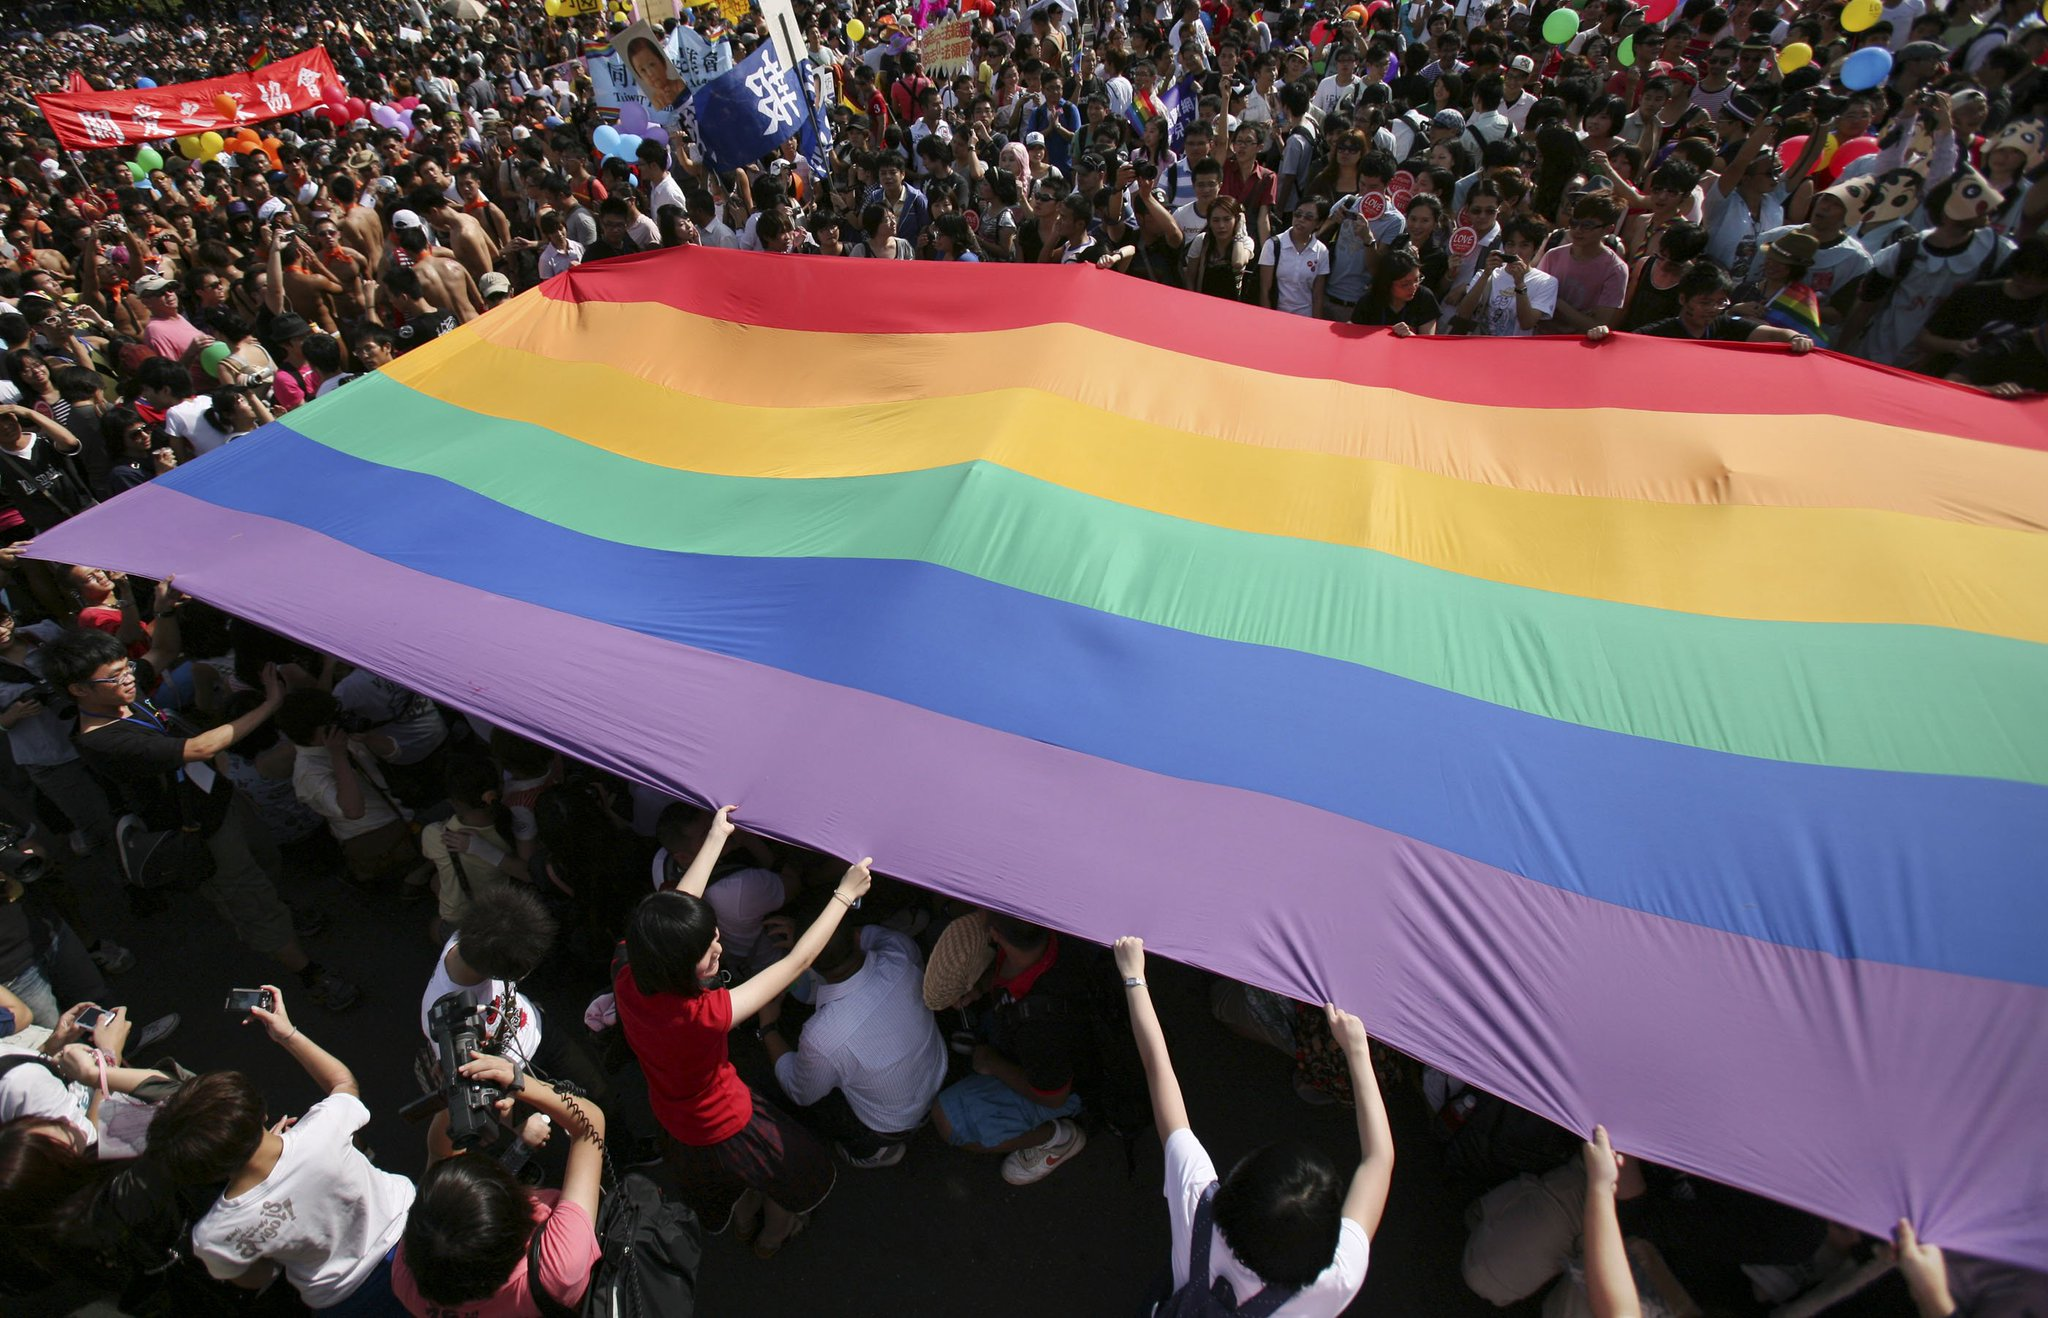 #BREAKING—Taiwan's top court rules same-sex marriage ban is unconstitutional. ��️������ https://t.co/4s5DmGqp1C